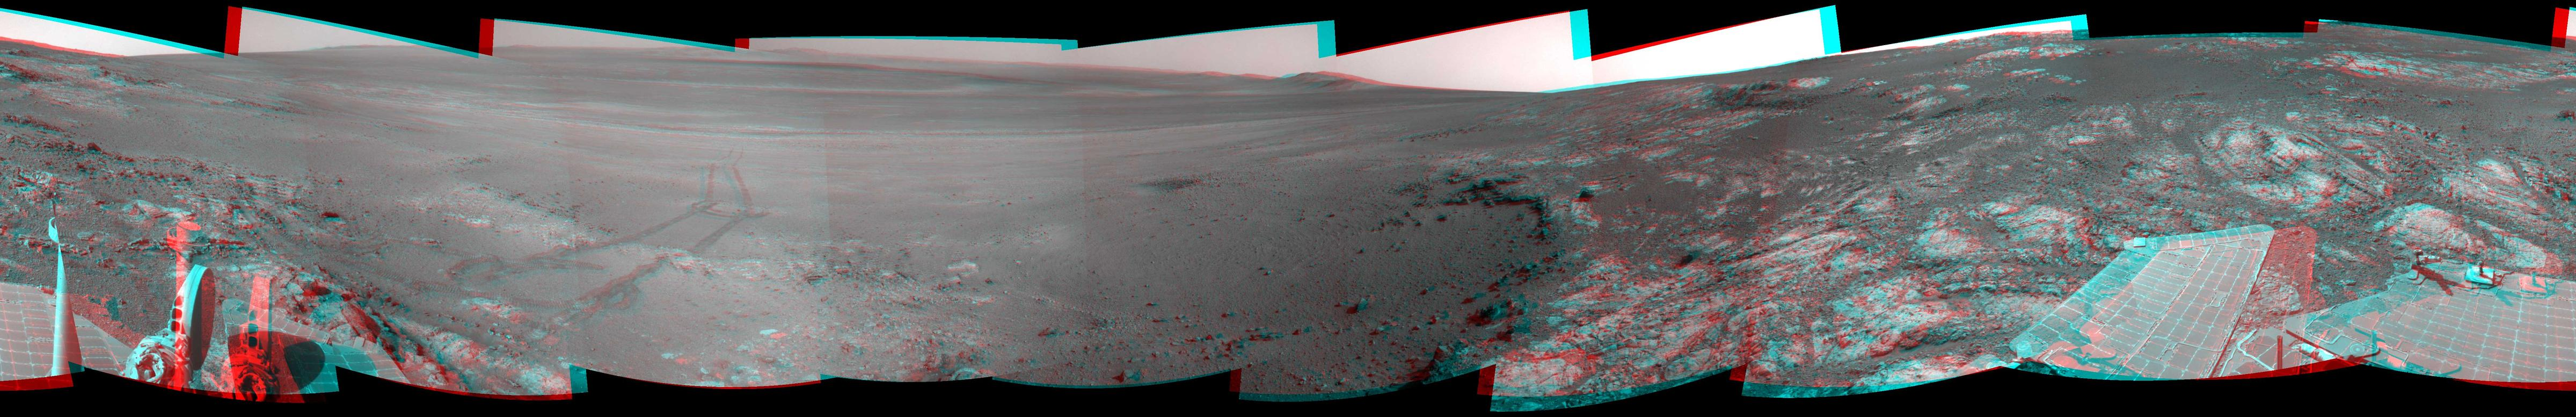 This full-circle, stereo panorama shows the terrain around the NASA Mars Exploration Rover Opportunity during the 3,071st Martian day, or sol, of the rover's work on Mars (Sept. 13, 2012).